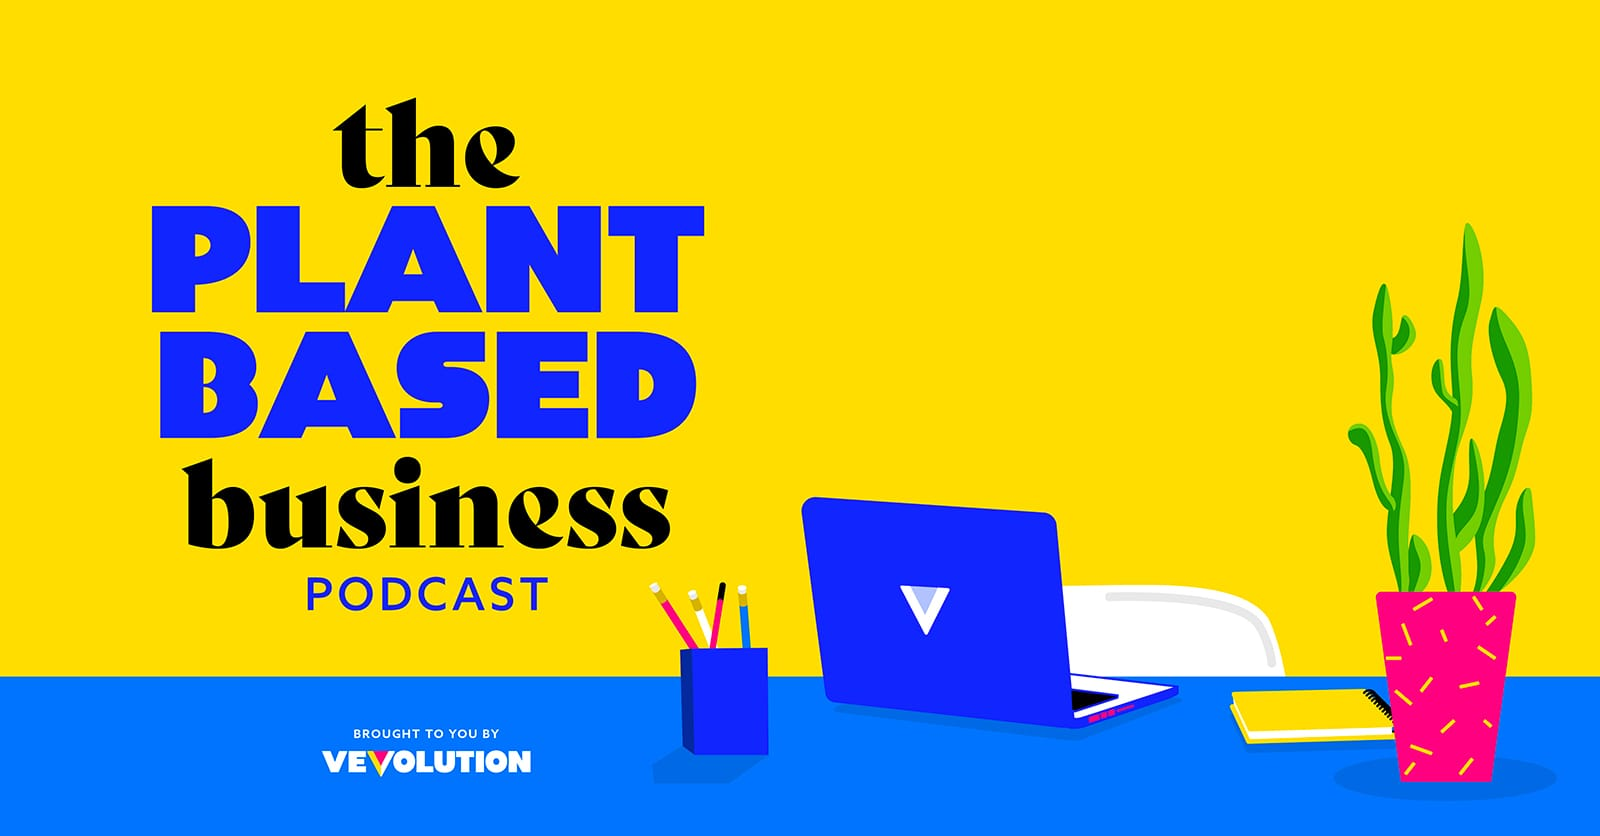 The Plant Based Business Podcast by Vevolution